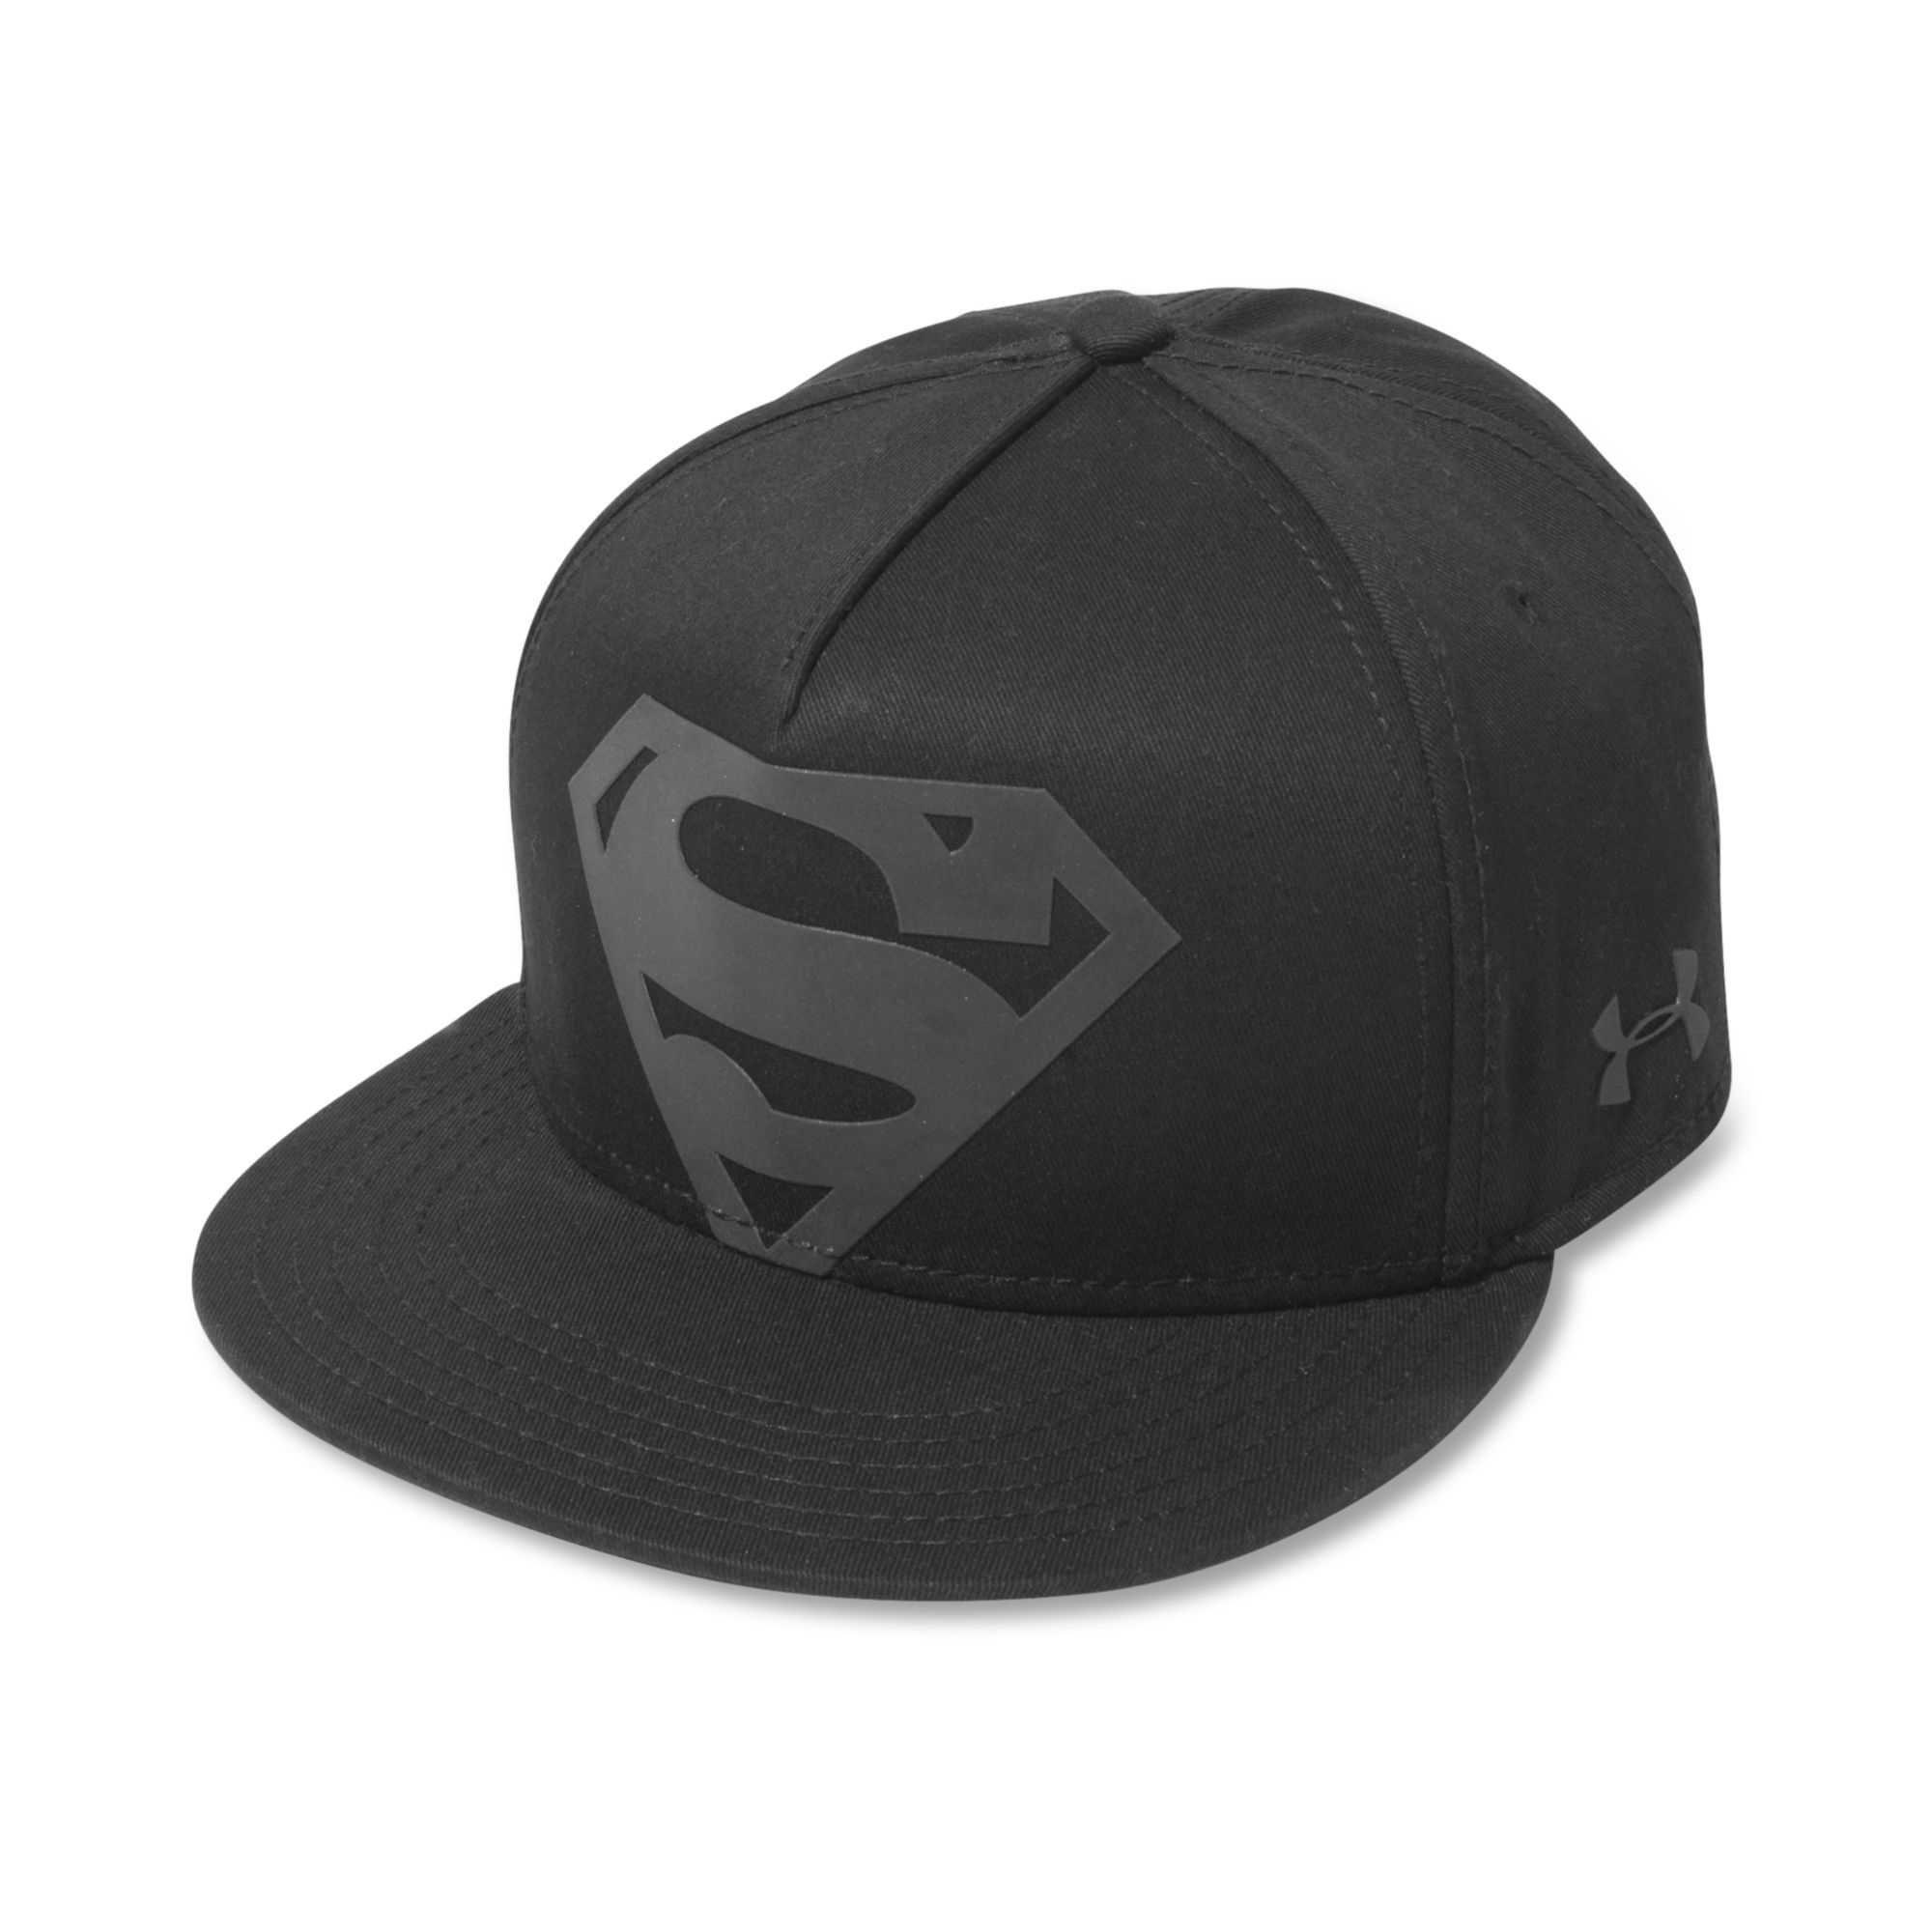 Lyst - Under Armour Superman Reflective Hat in Black for Men 960903f0fad